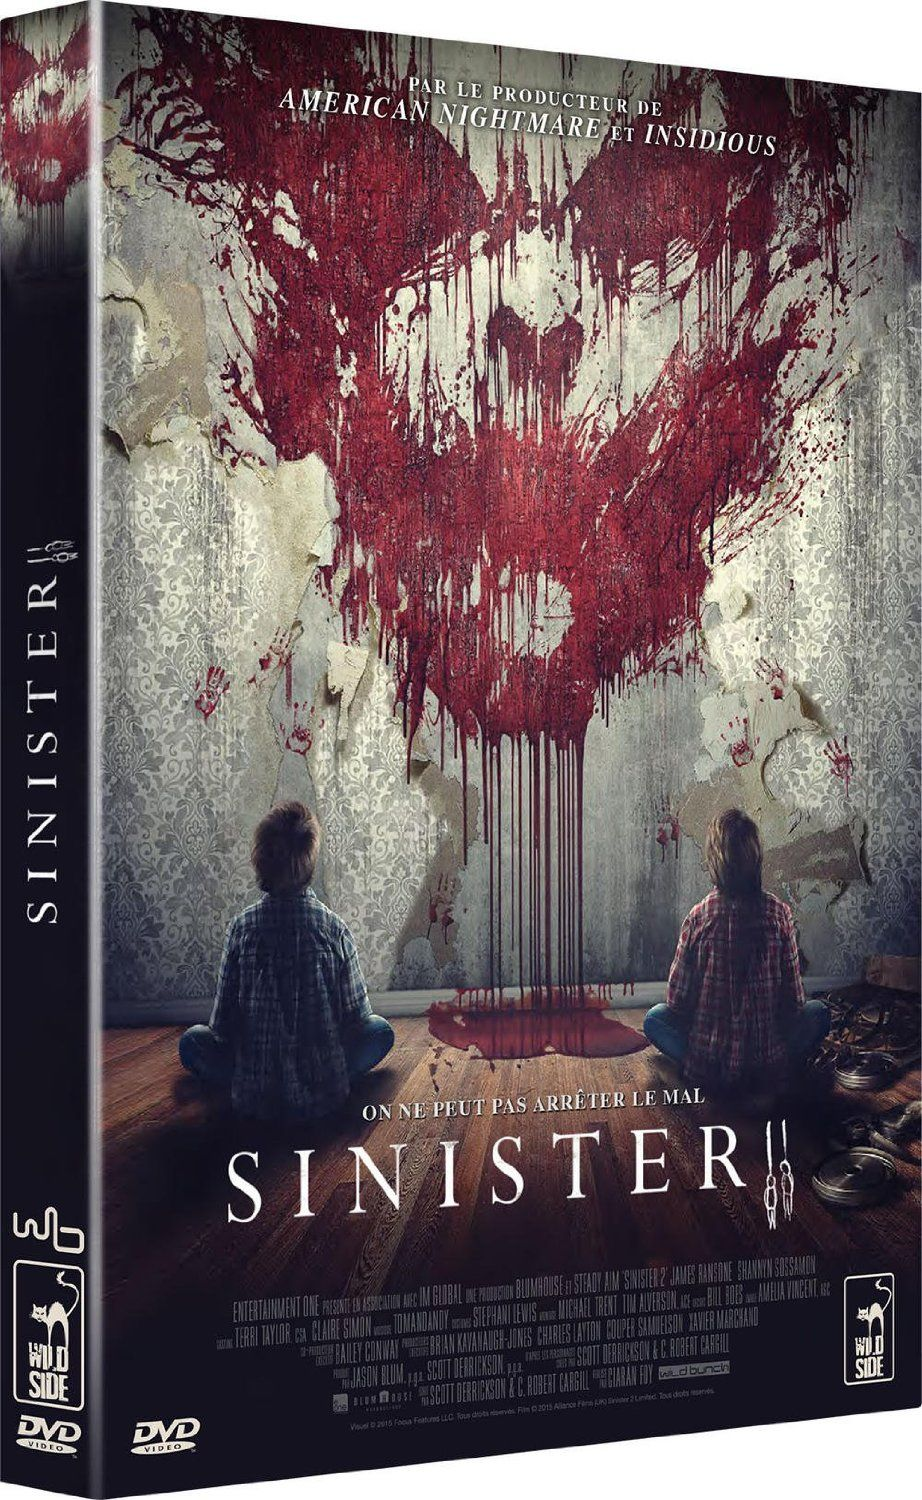 Concours Sinister Ii Gagnez Des Dvd Et Blu Ray Cine Toile Com Scary Movies Horror Movies Horror Movie Posters